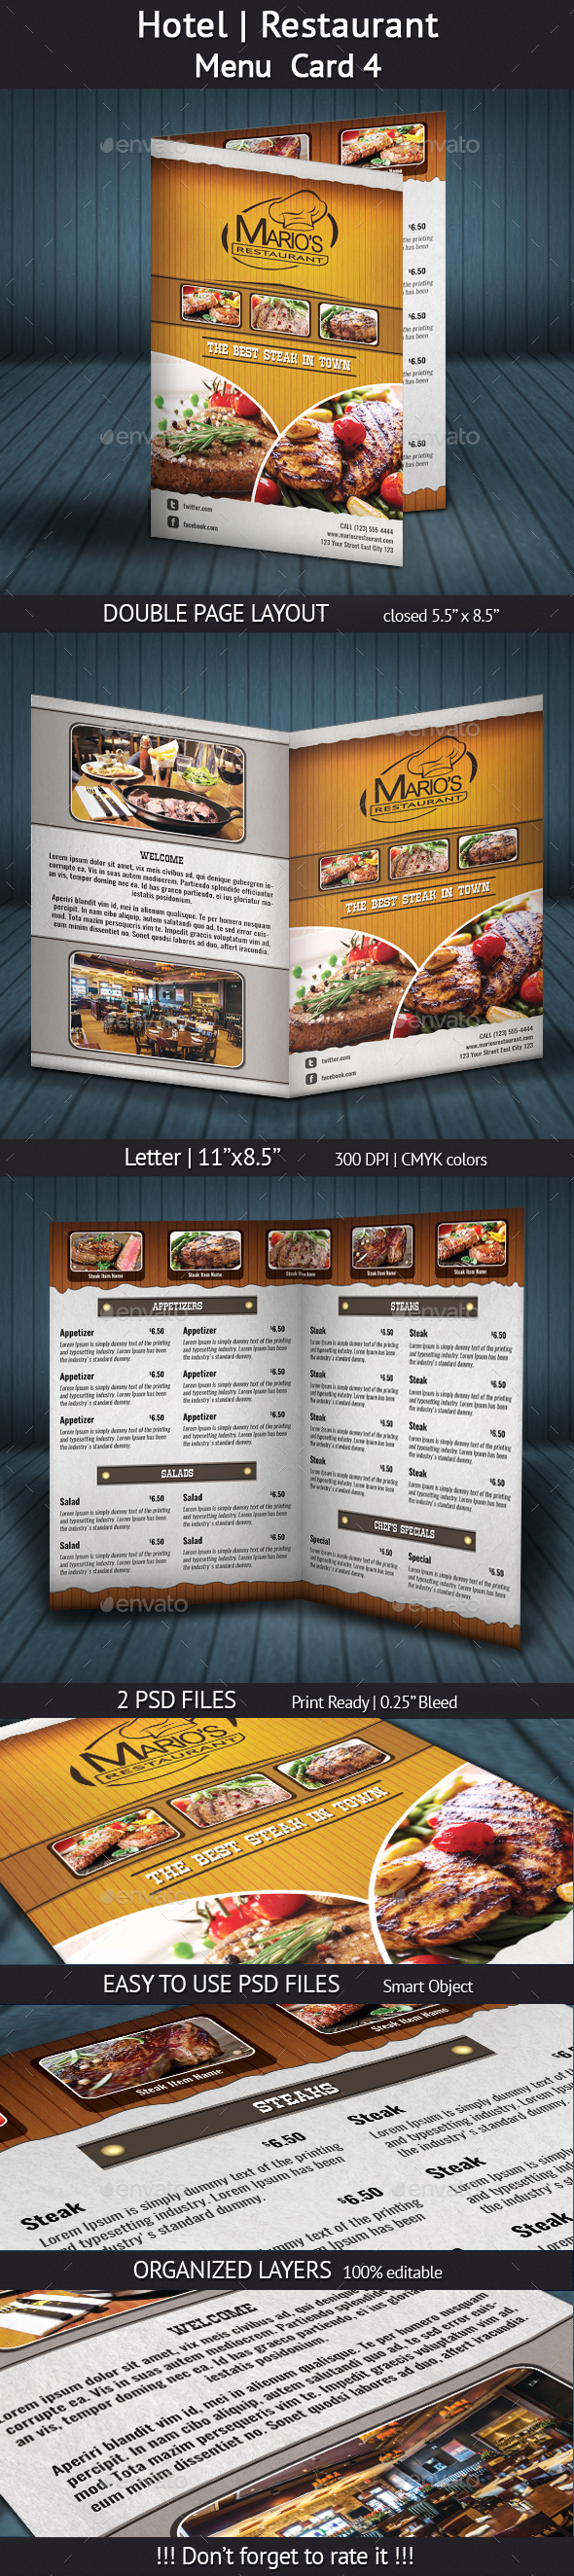 Hotel | Restaurant Menu Card 4 - Food Menus Print Templates